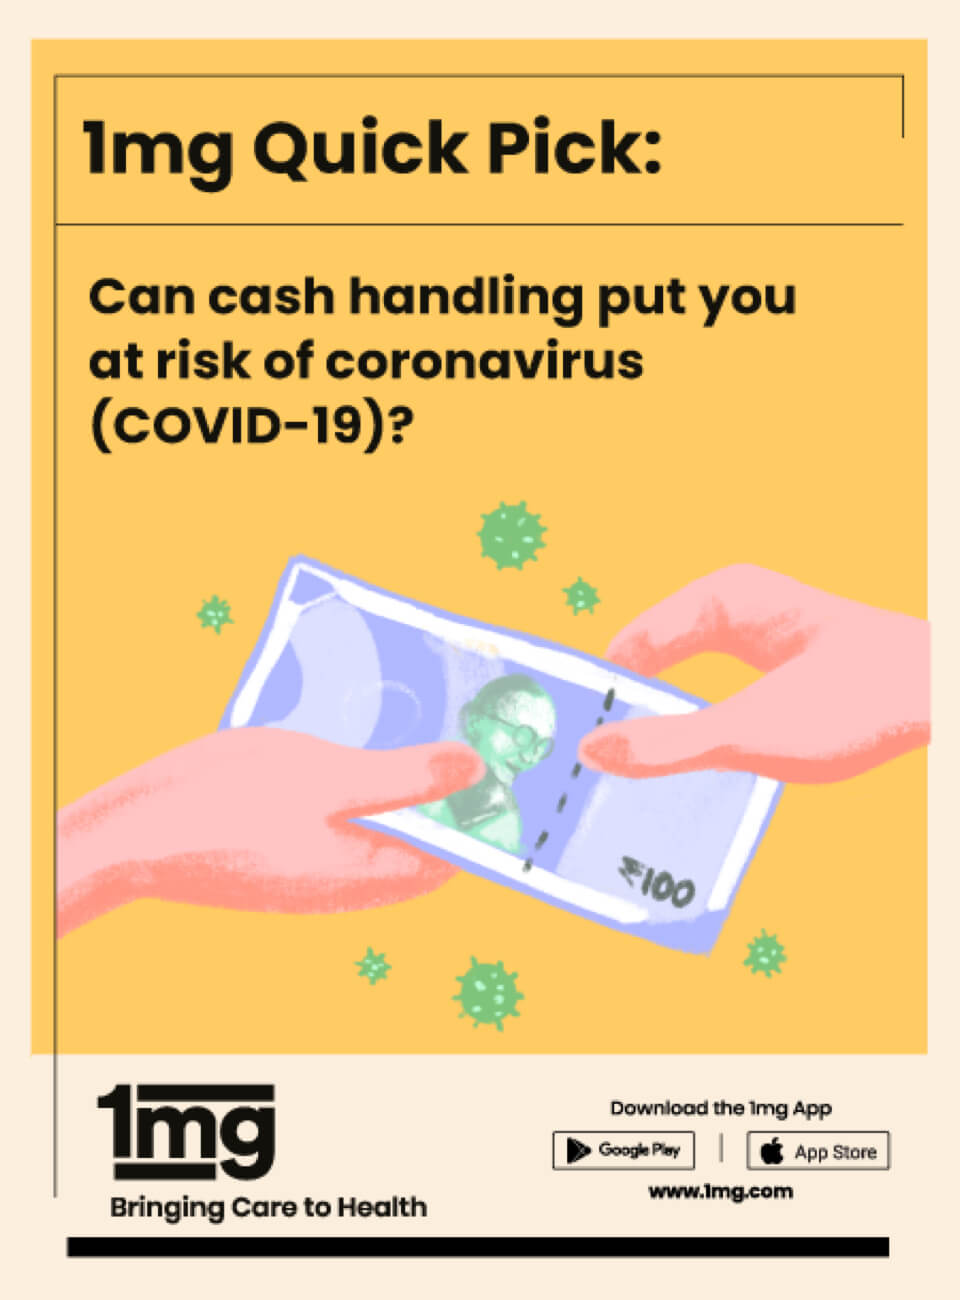 Handling Cash Amid COVID-19 A 1mg Guide